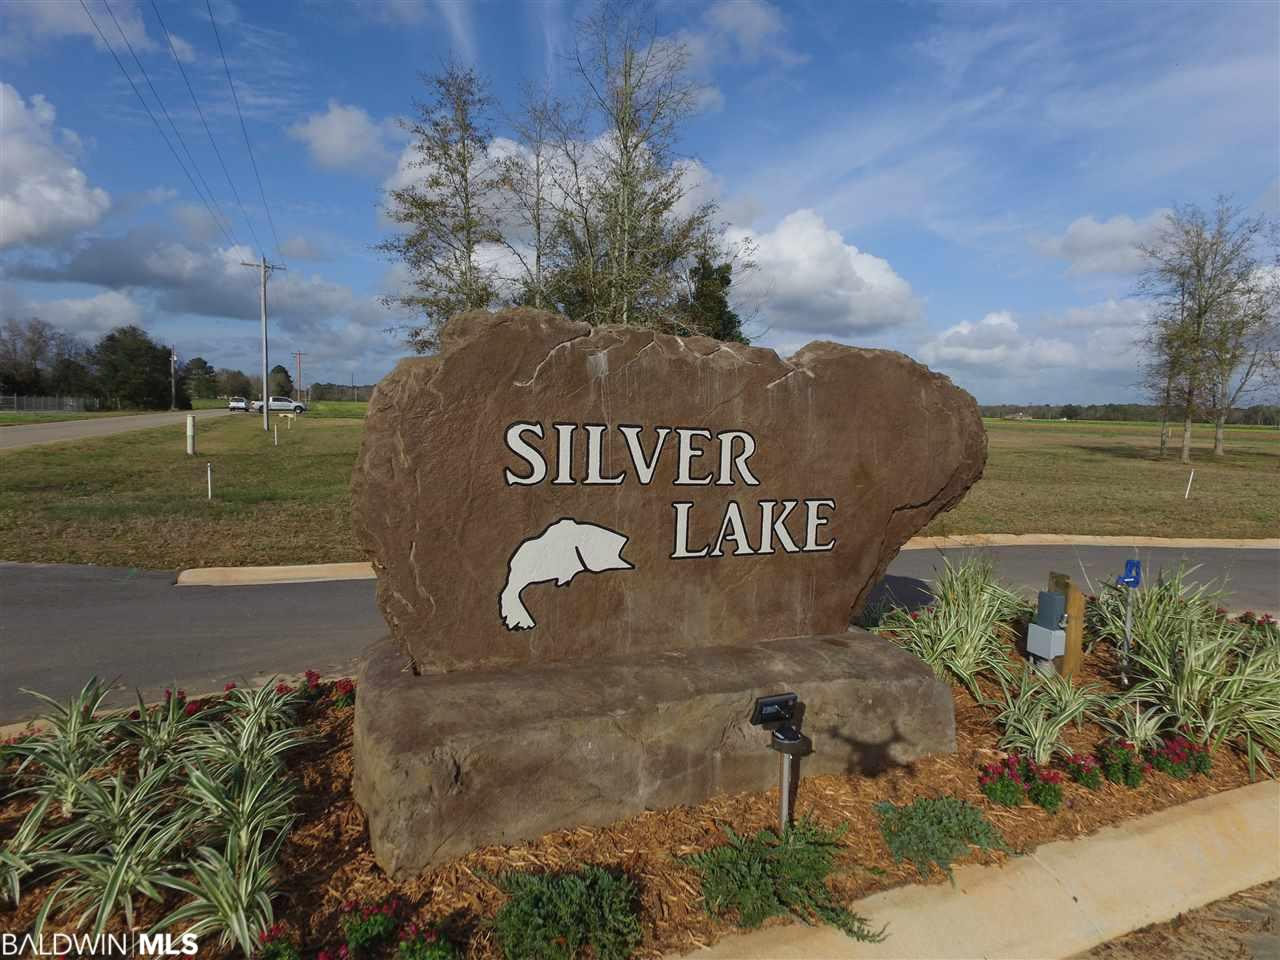 Enjoy tranquil living on estate size lots in this new subdivision just south of Silverhill.  This beautiful lot is the largest in the of bunch and directly on the lakefront.  You'll love the fishing or just admiring the view. Come home to Silver Lake where you'll love the peaceful and quiet enjoyment of this rural community. Perfectly located in Central Southern Baldwin County and less than ten minutes from 1-10, Fairhope, The Beach Express, Robertsdale and Foley. Choose your own builder and begin living the good life you deserve in Silver Lake!